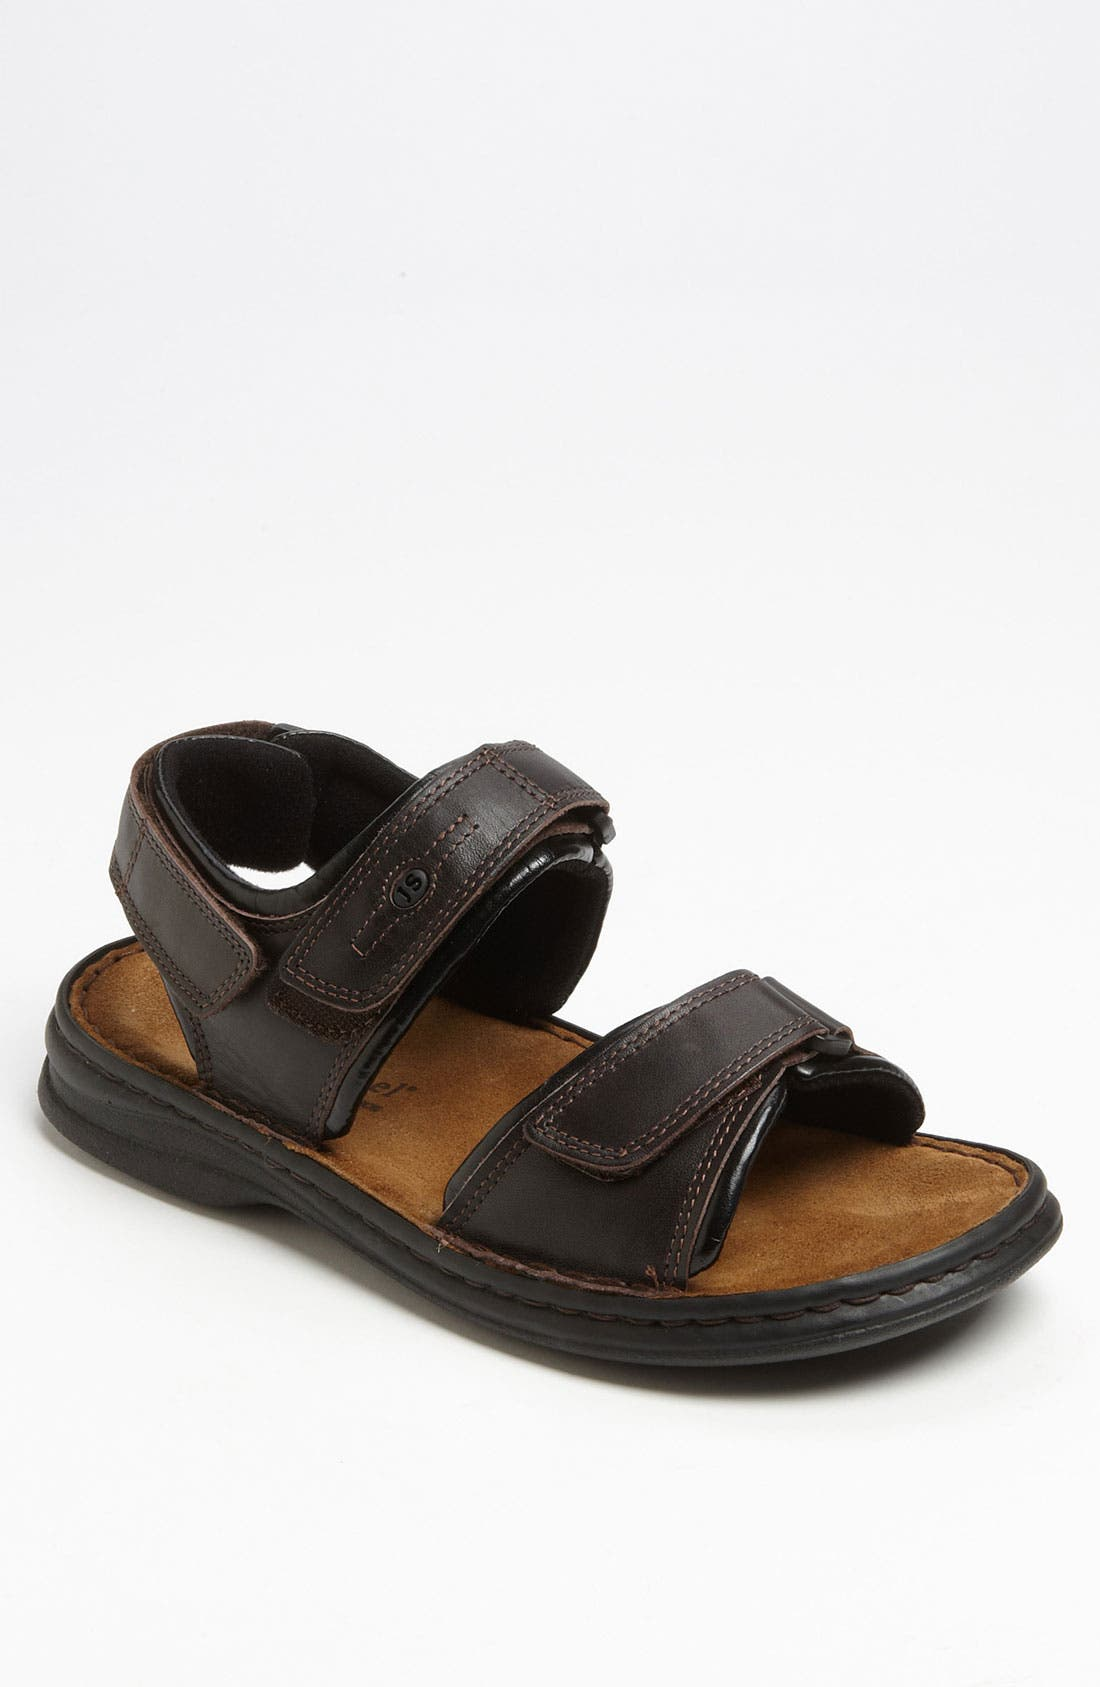 'Rafe' Sandal,                         Main,                         color, Dakota Moro/Black